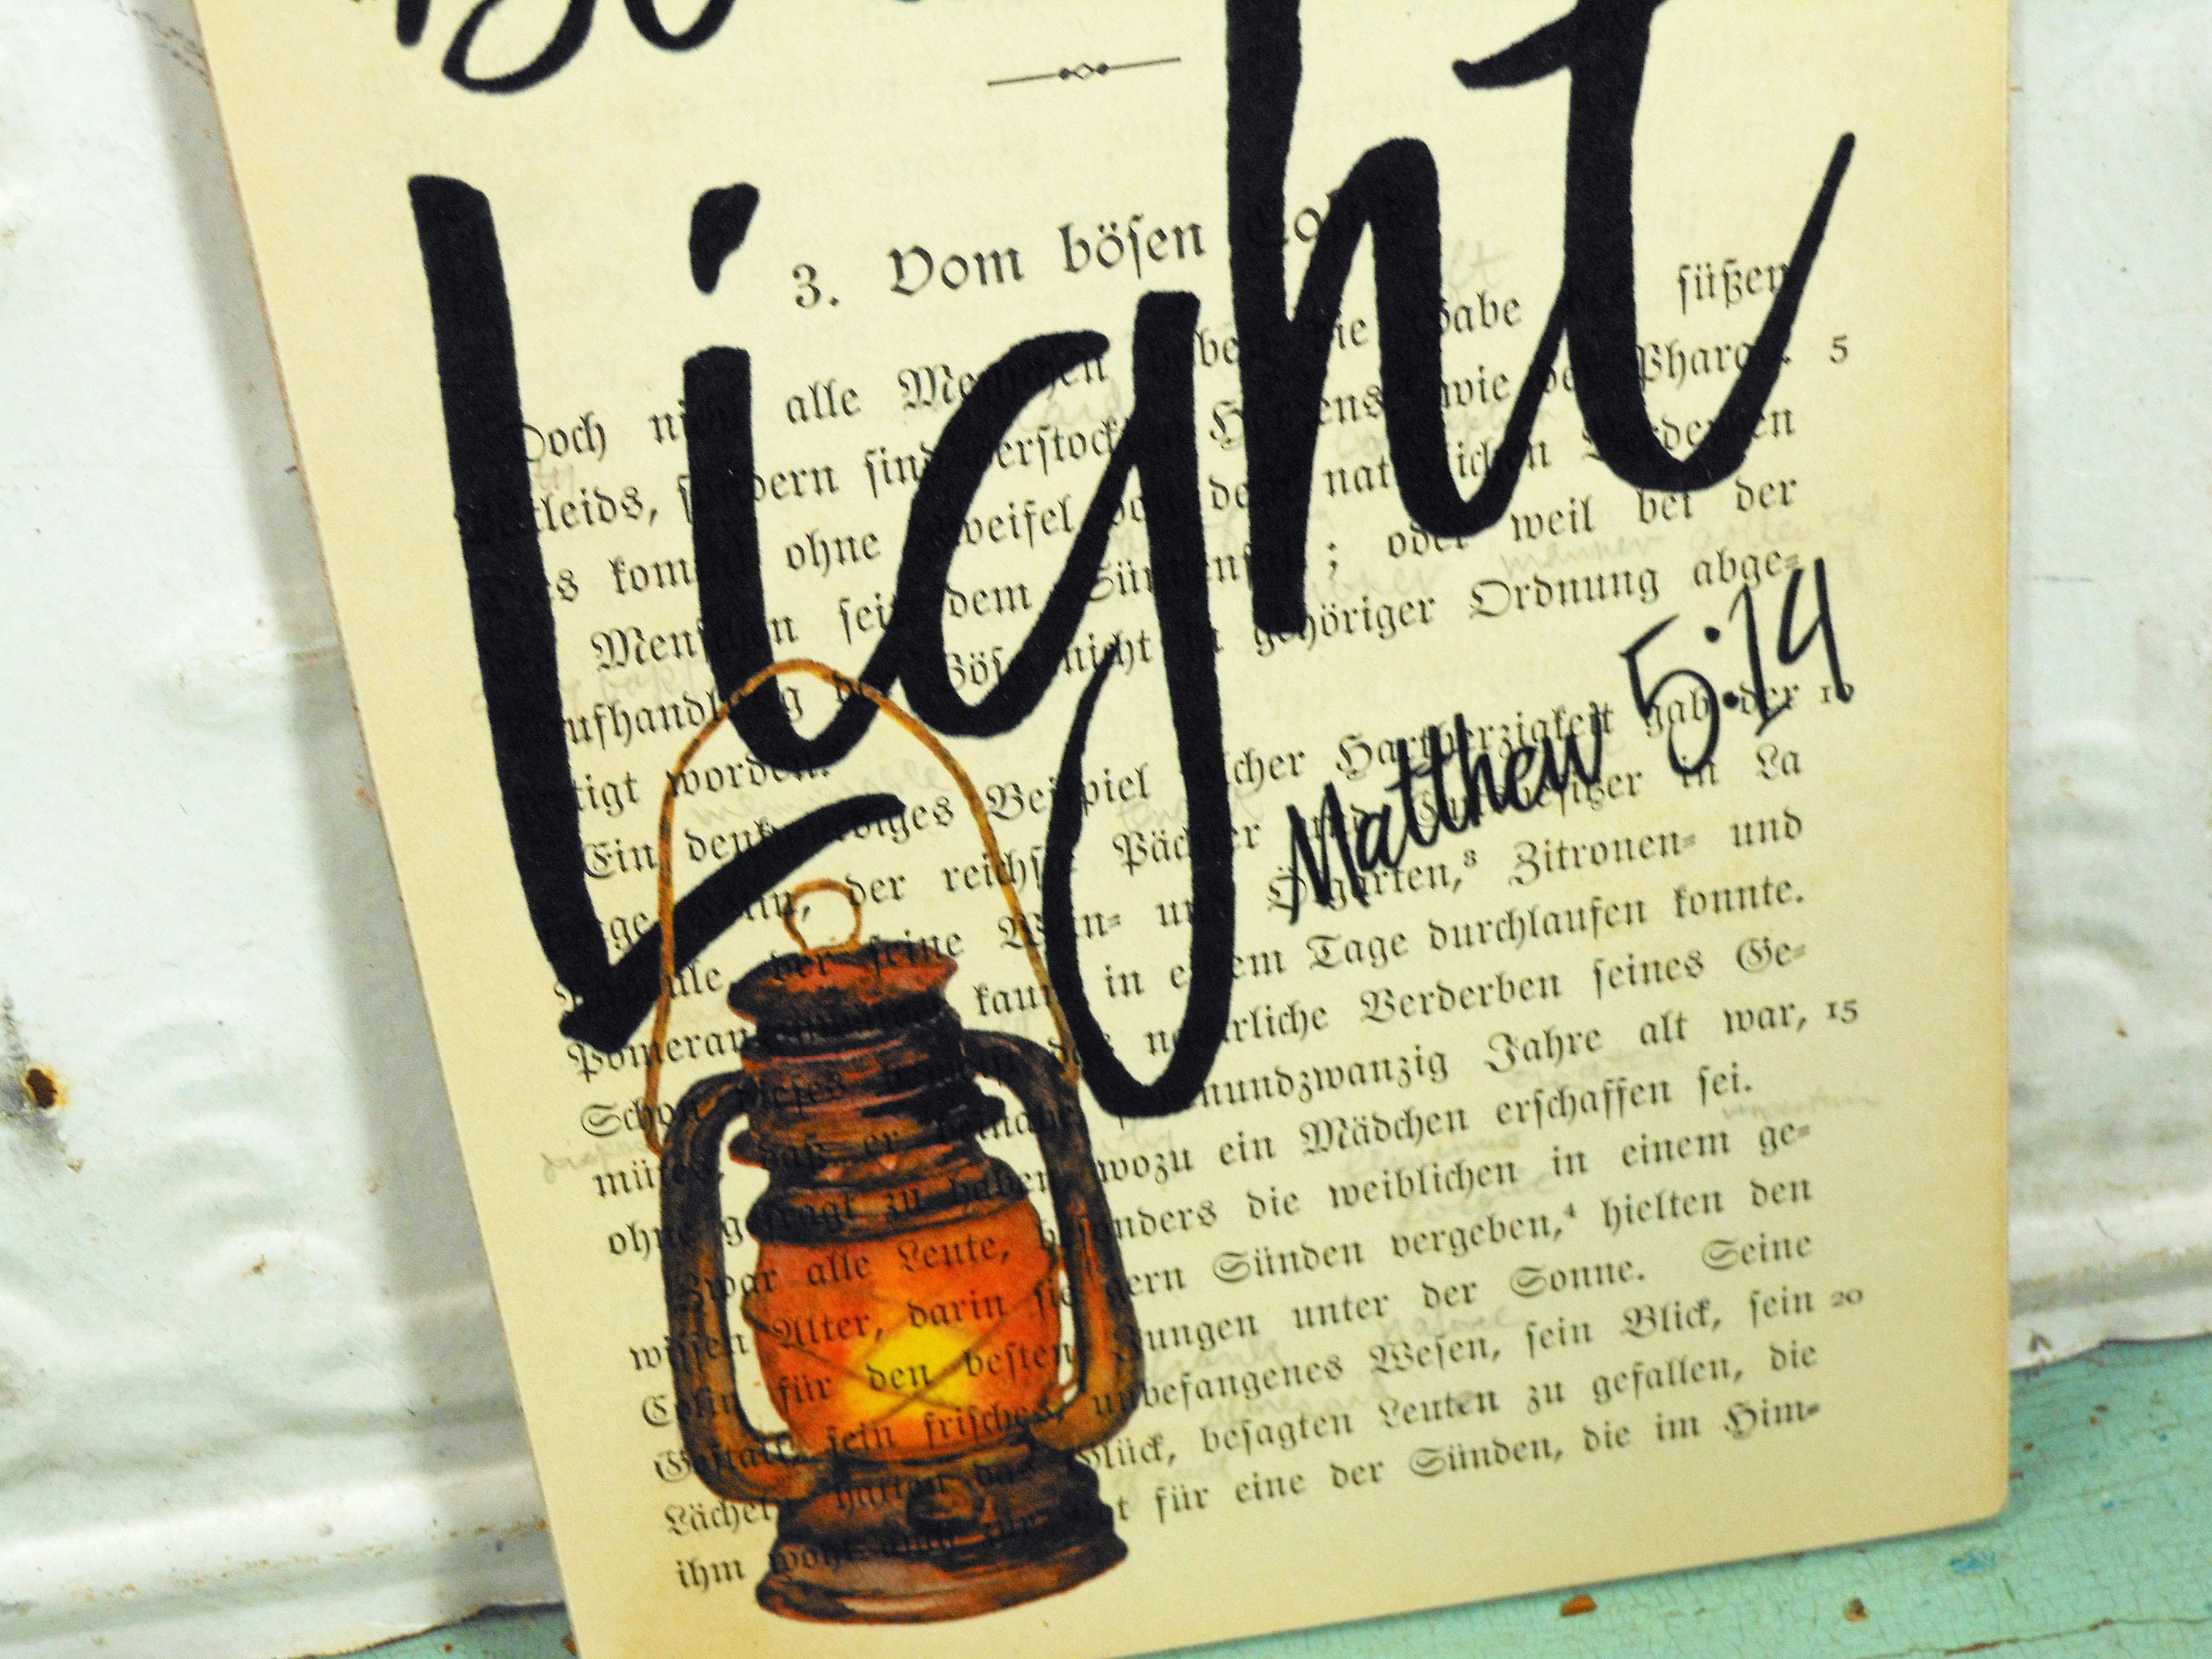 Be the Light, Matthew 5:14 Print on Page from Vintage German Book